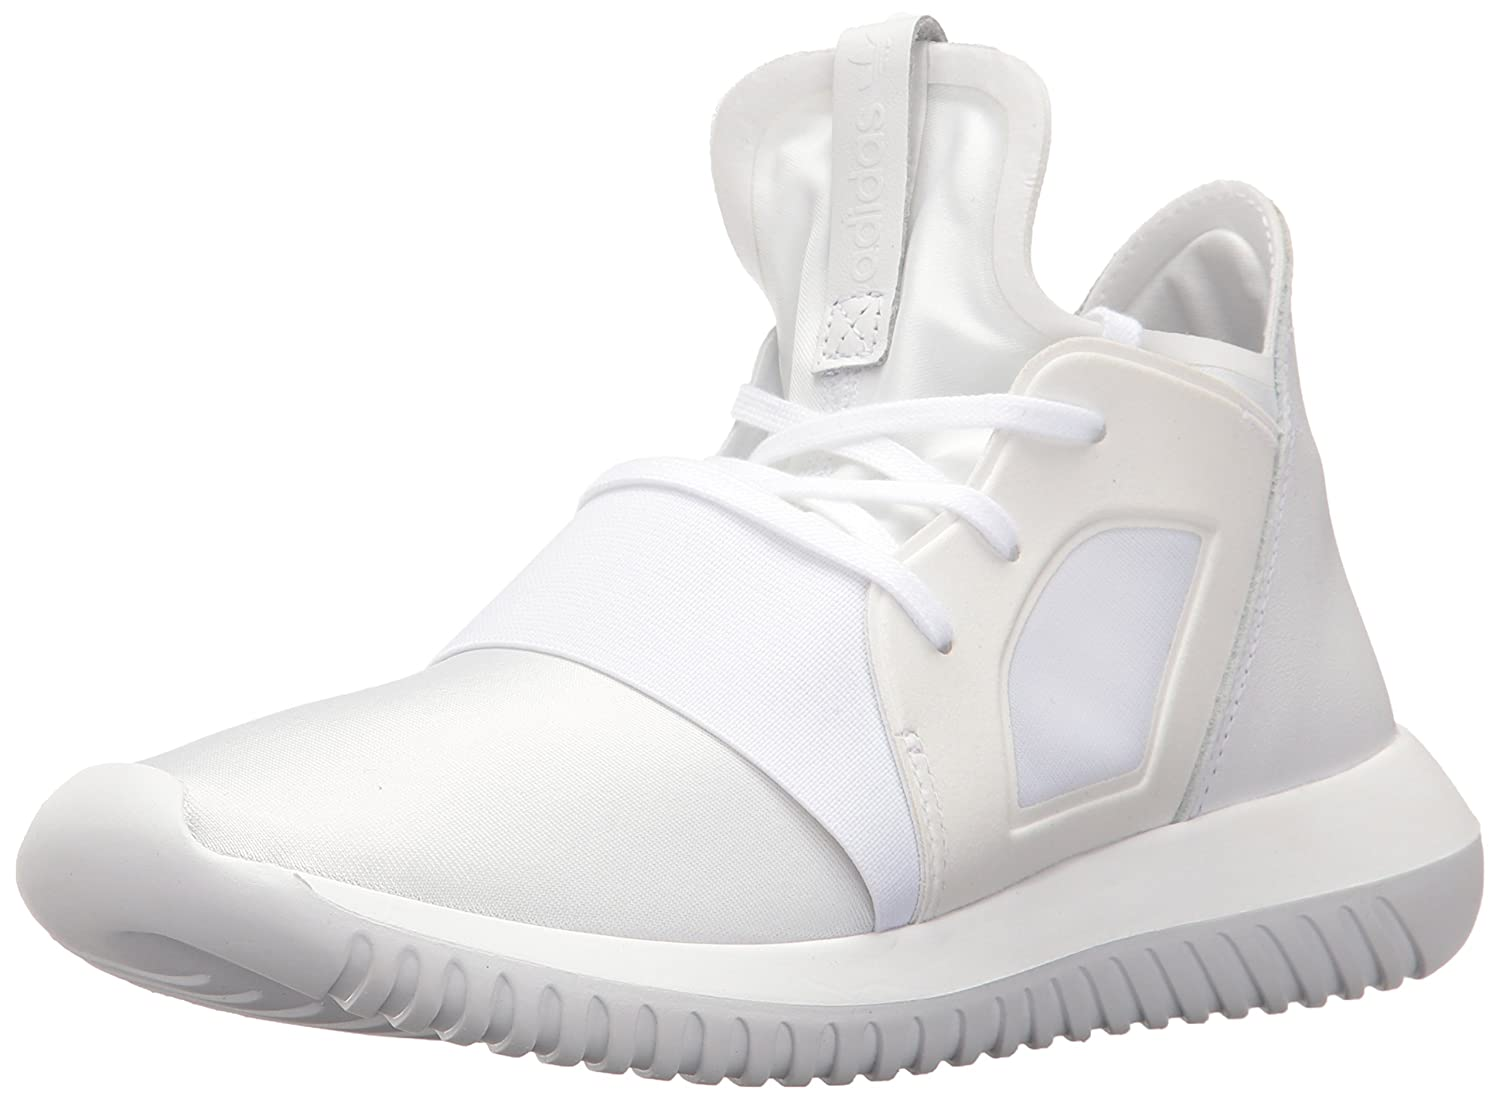 wholesale dealer 06c6a 164fa adidas Originals Tubular Defiant Fashion Running Shoe